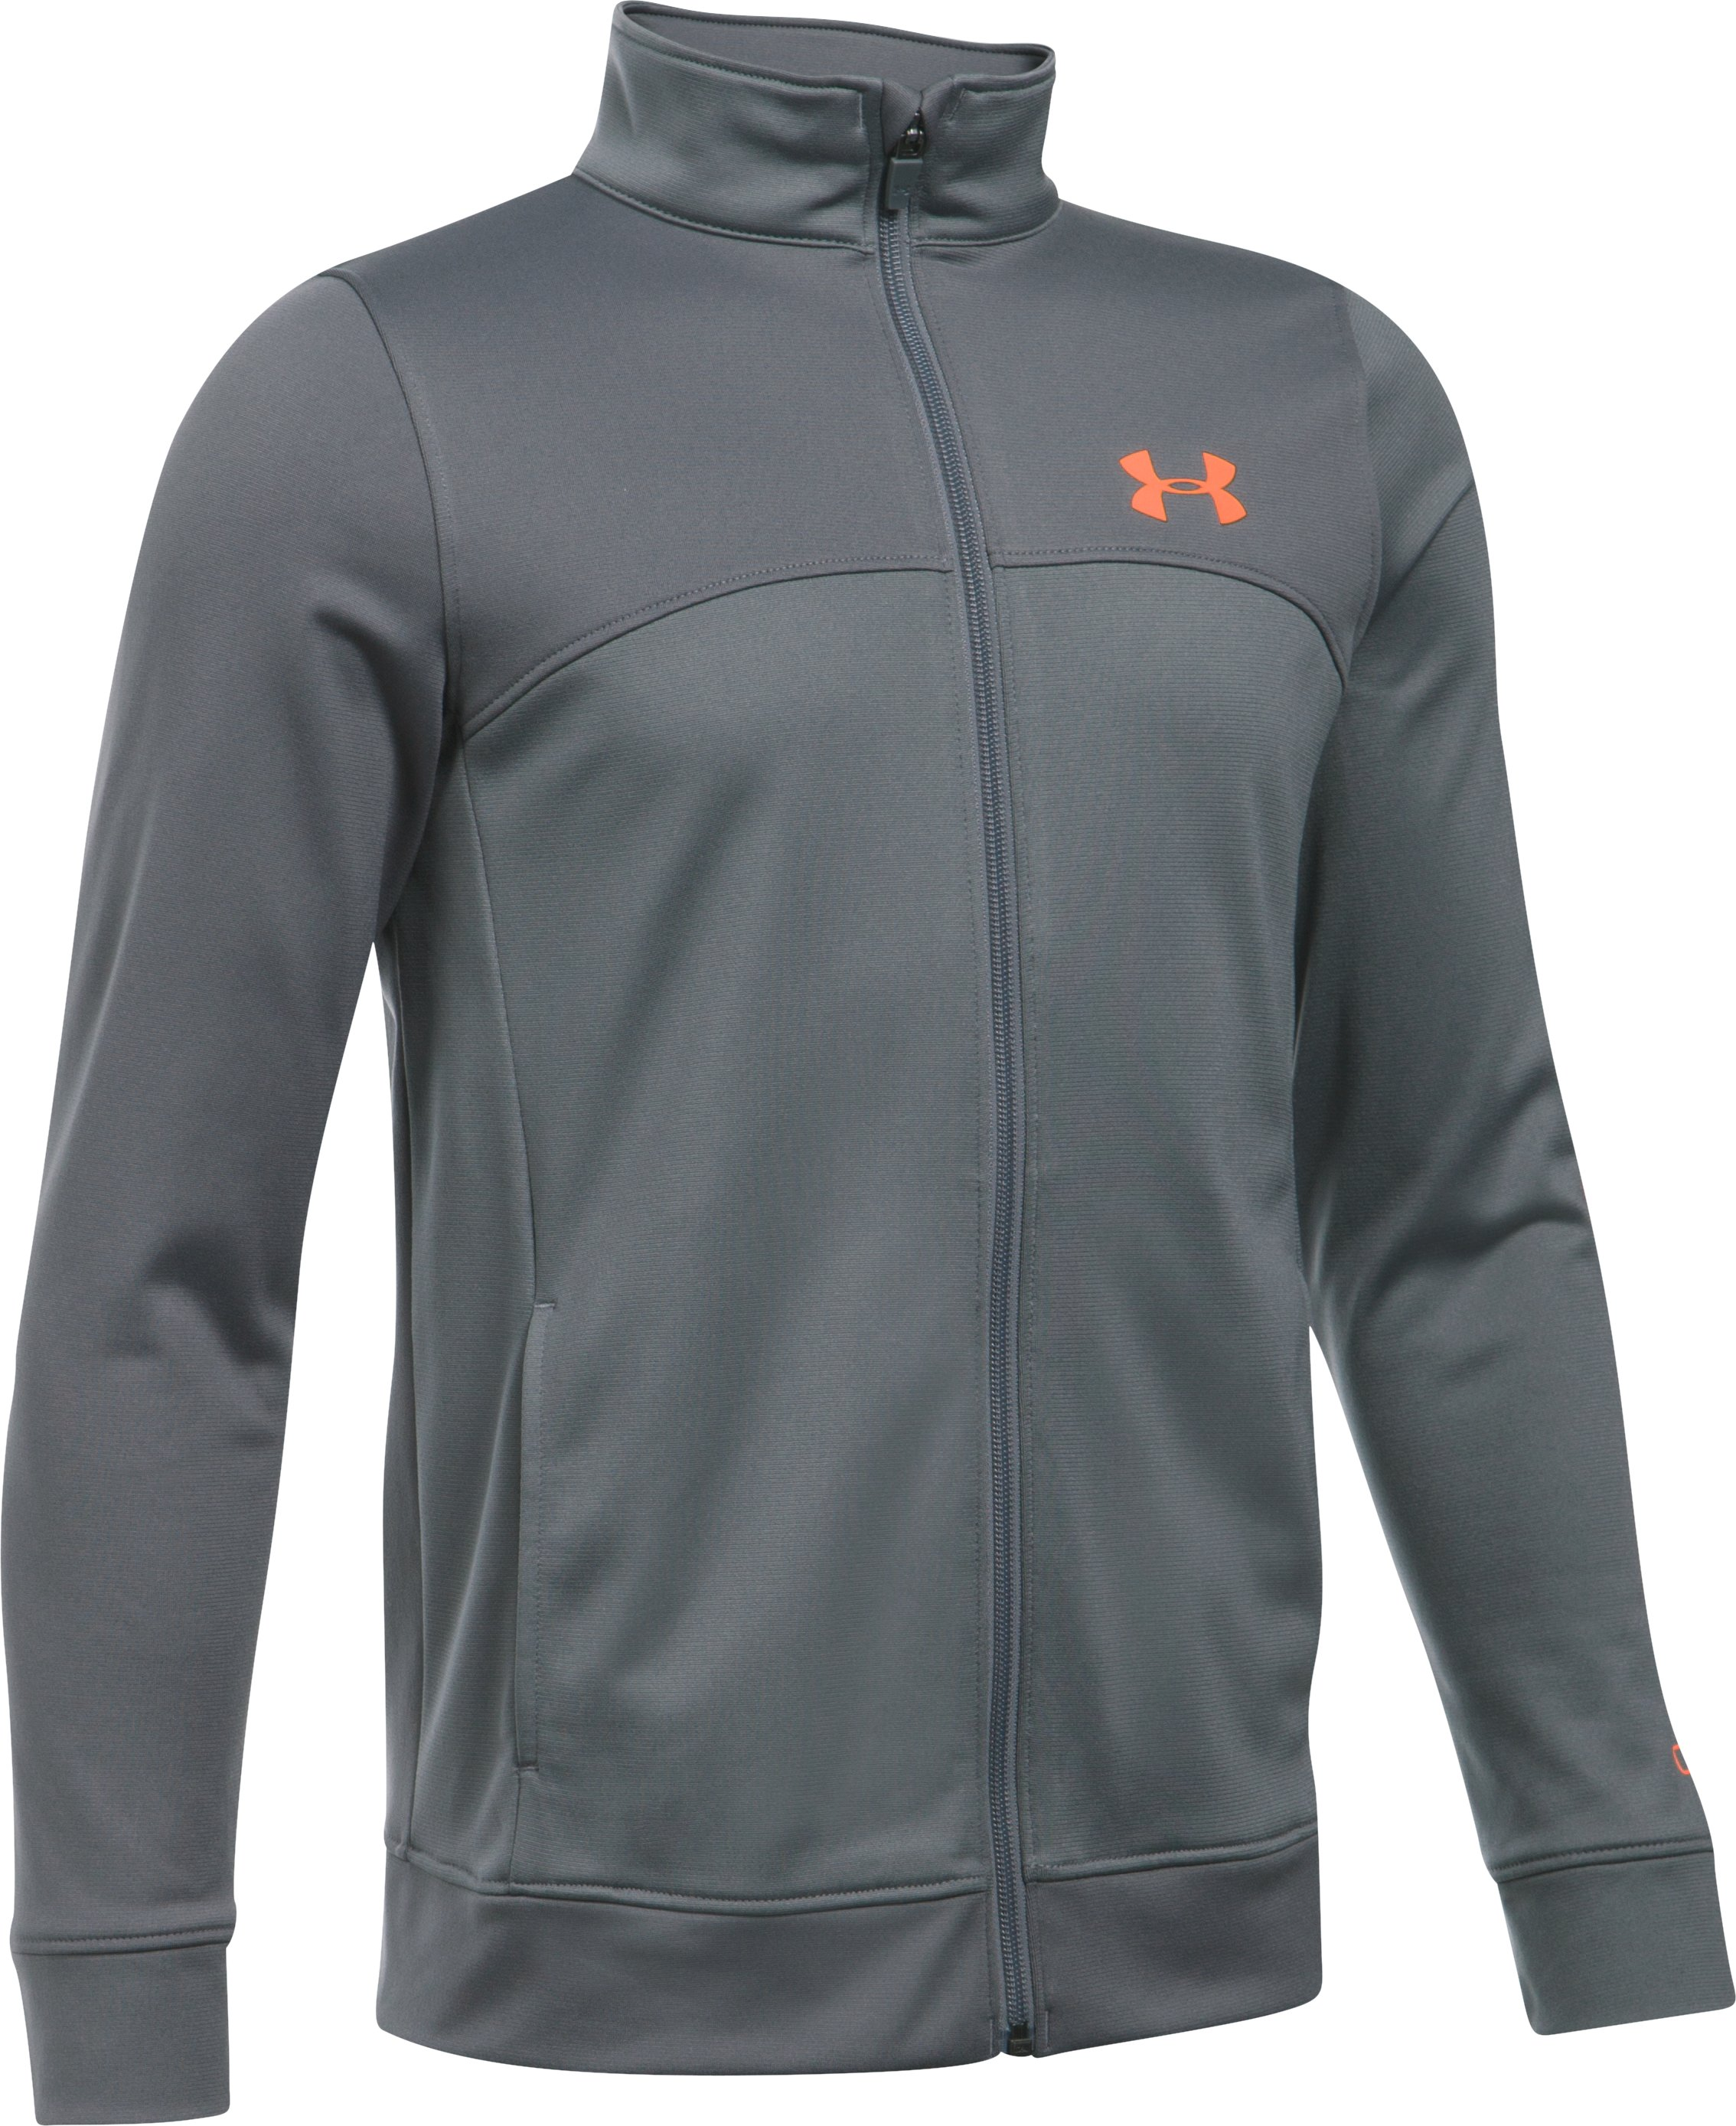 Boys' UA Pennant Warm-Up Jacket, Graphite